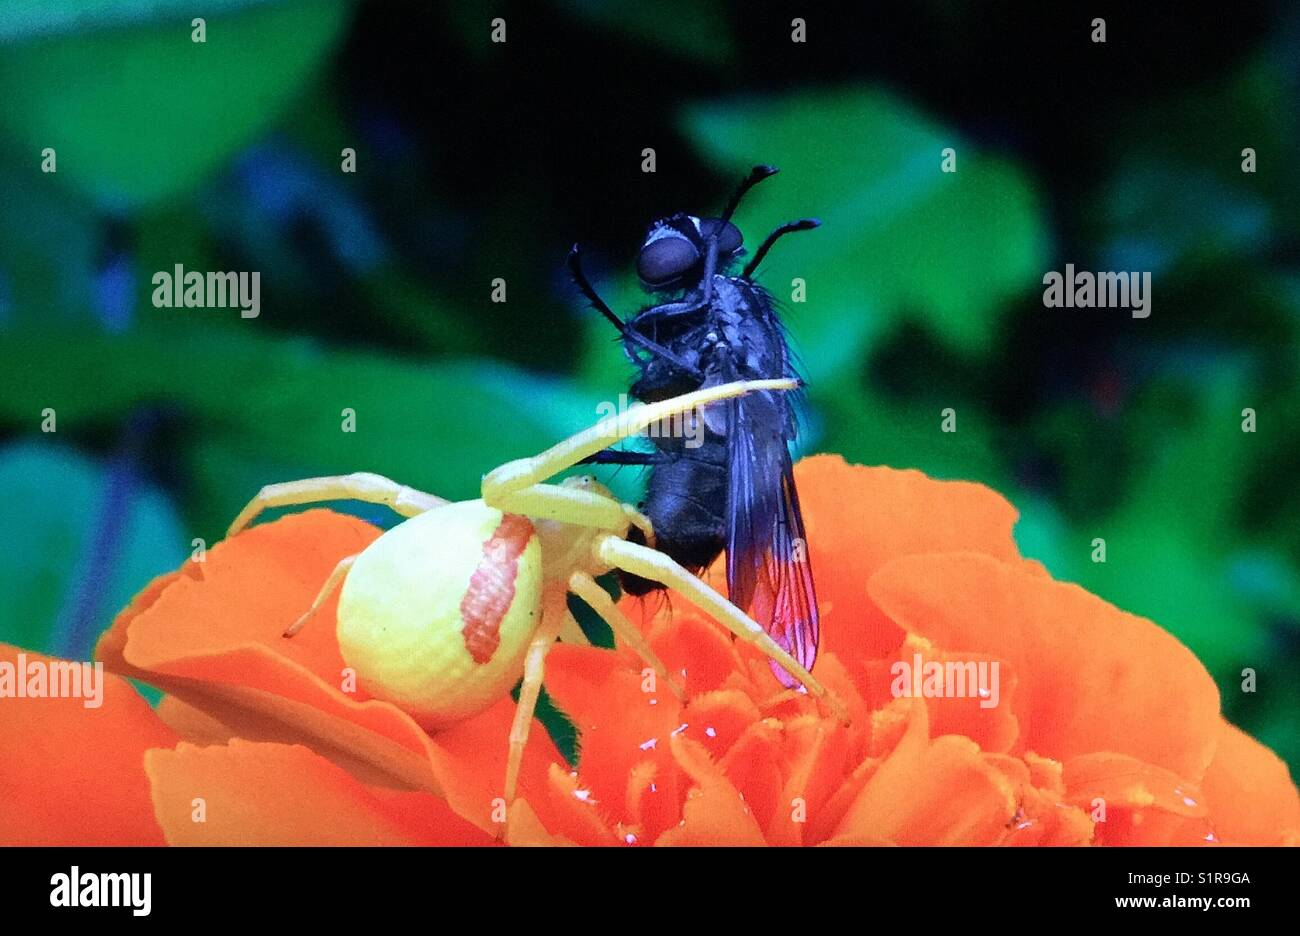 Goldenrod Crab spider capturing food - Stock Image